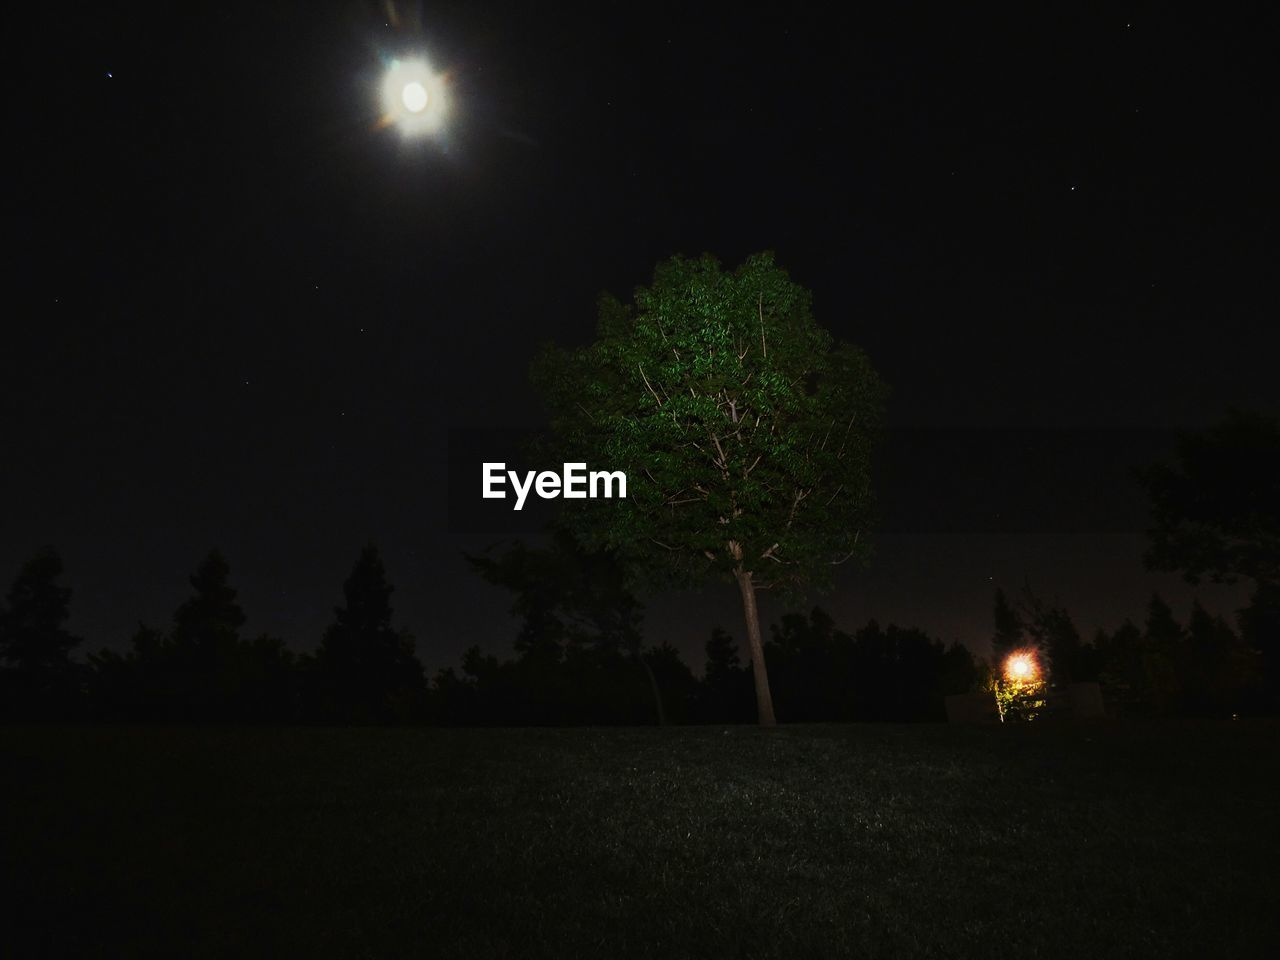 night, tree, moon, nature, tranquil scene, tranquility, beauty in nature, illuminated, moonlight, no people, outdoors, scenics, landscape, sky, grass, growth, astronomy